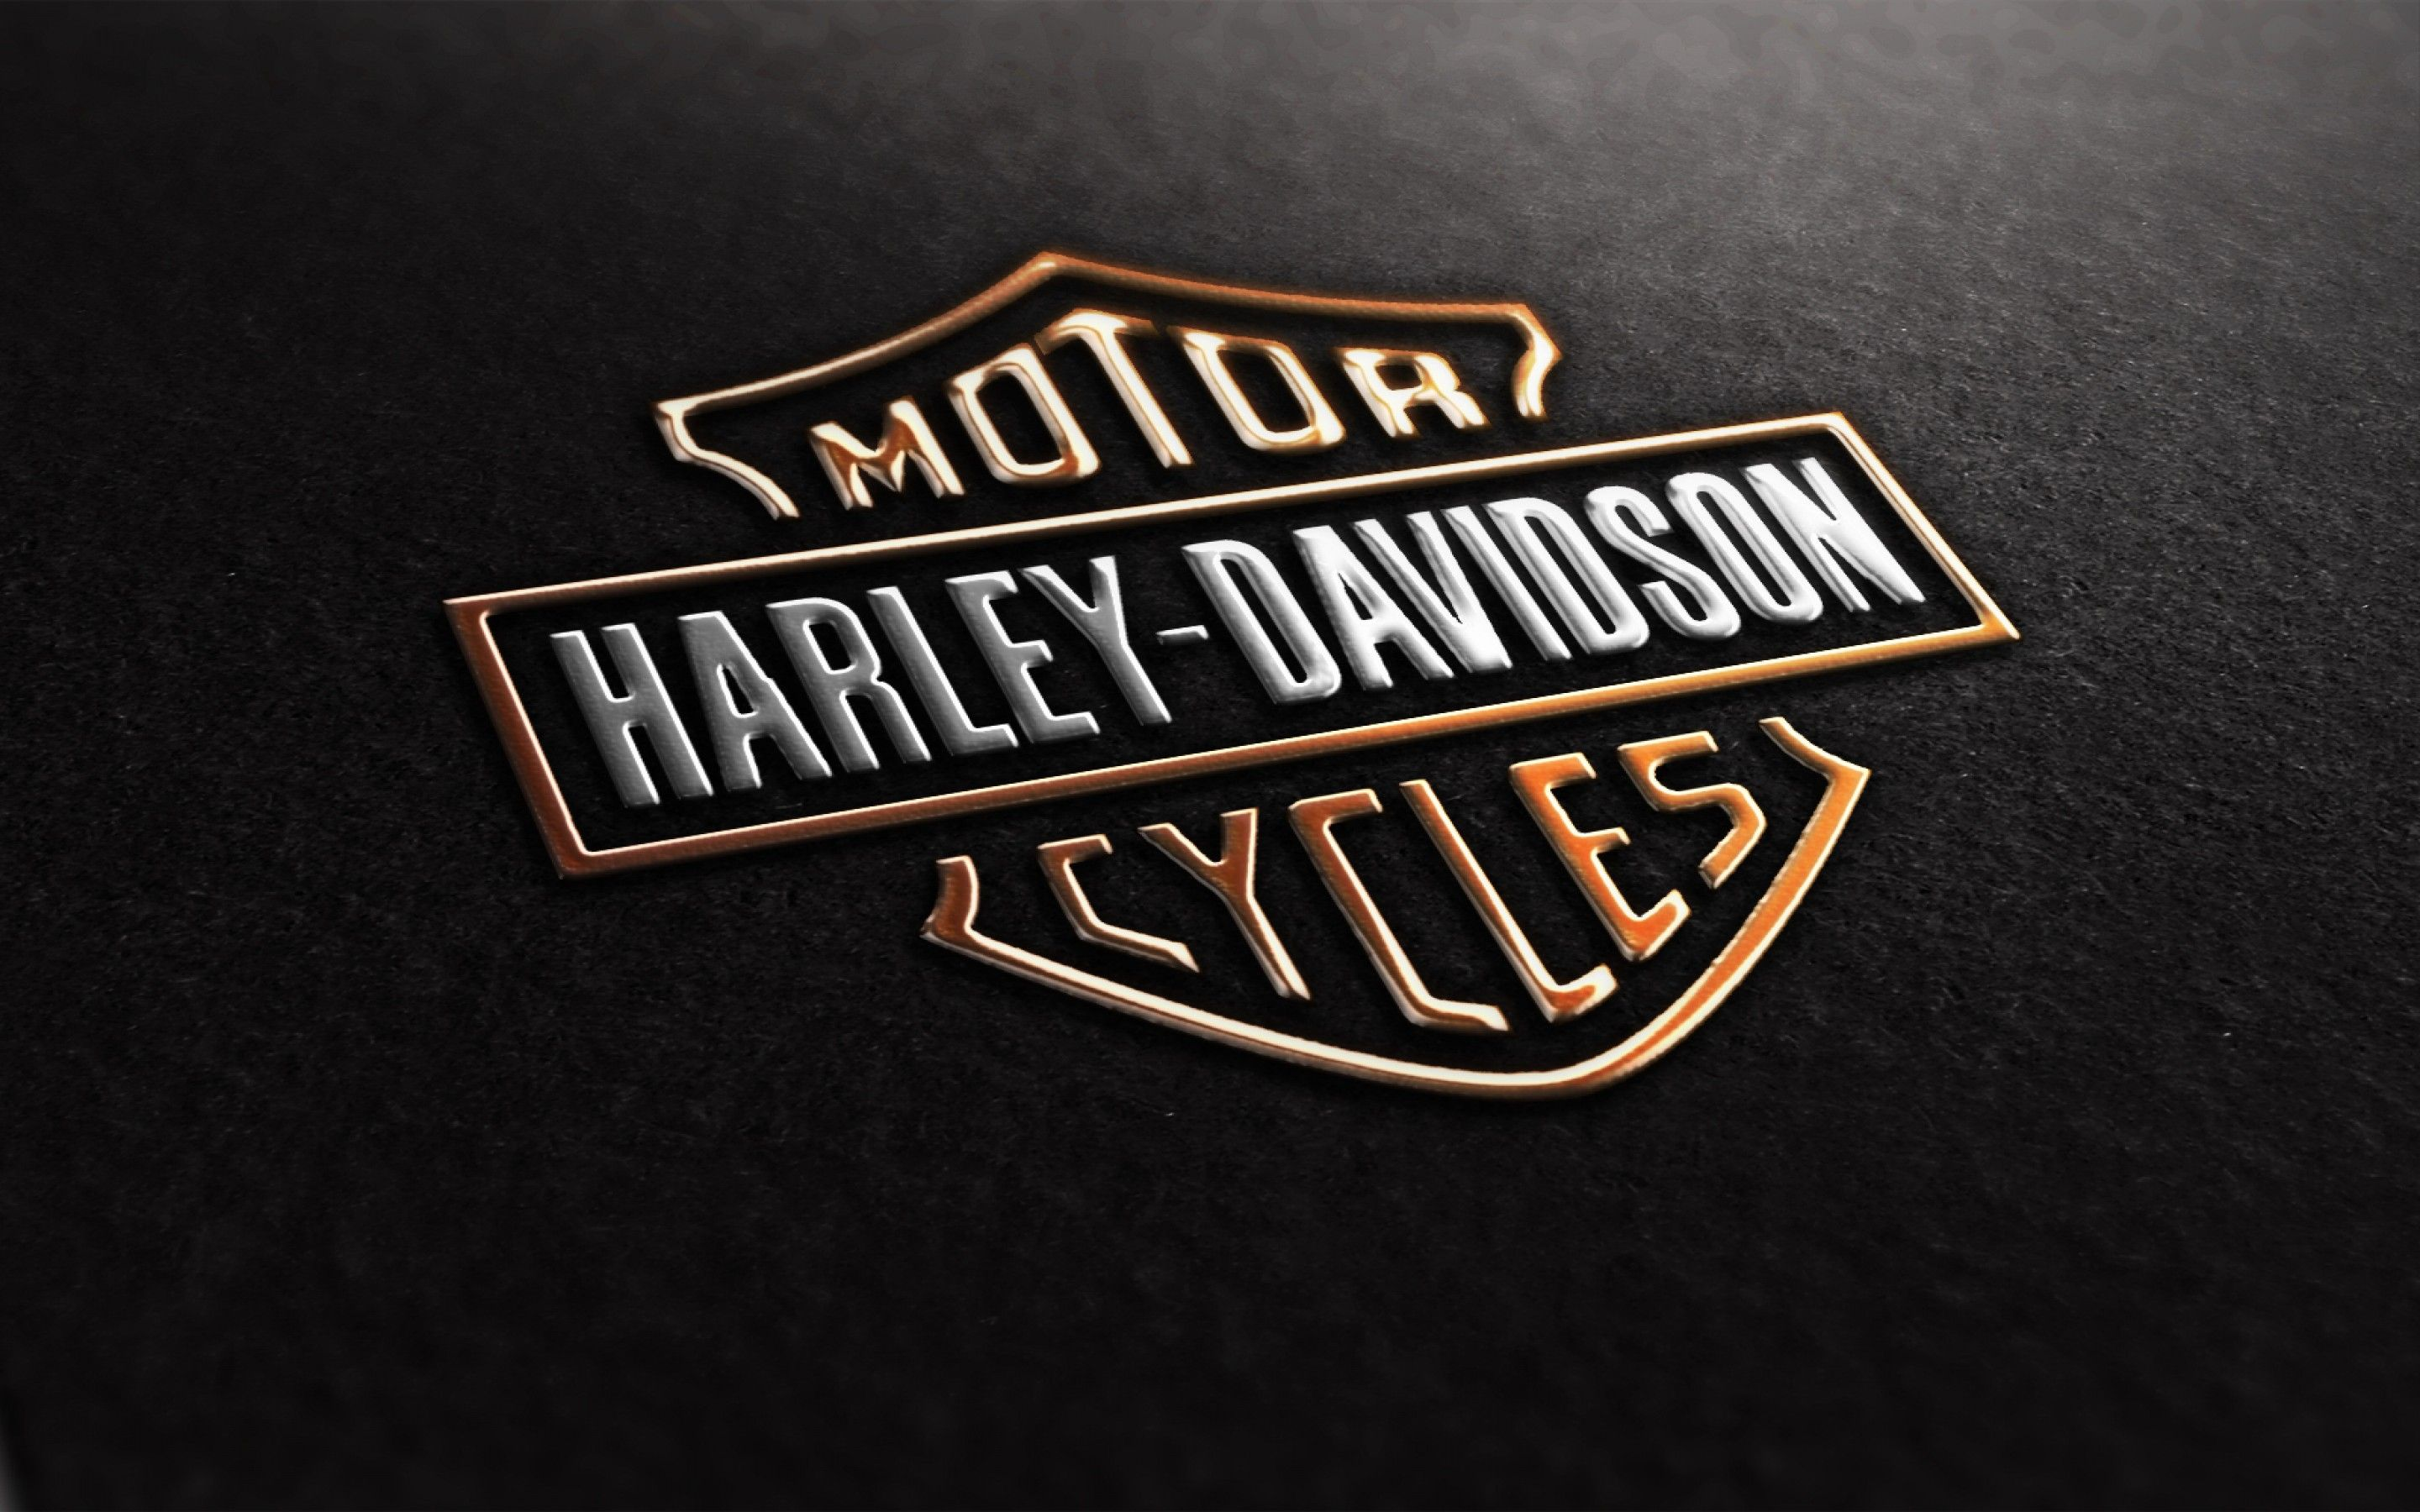 Harley Davidson Wallpaper Picture Qkc Harley Davidson Wallpaper Harley Davidson Patches Harley Davidson Dealership